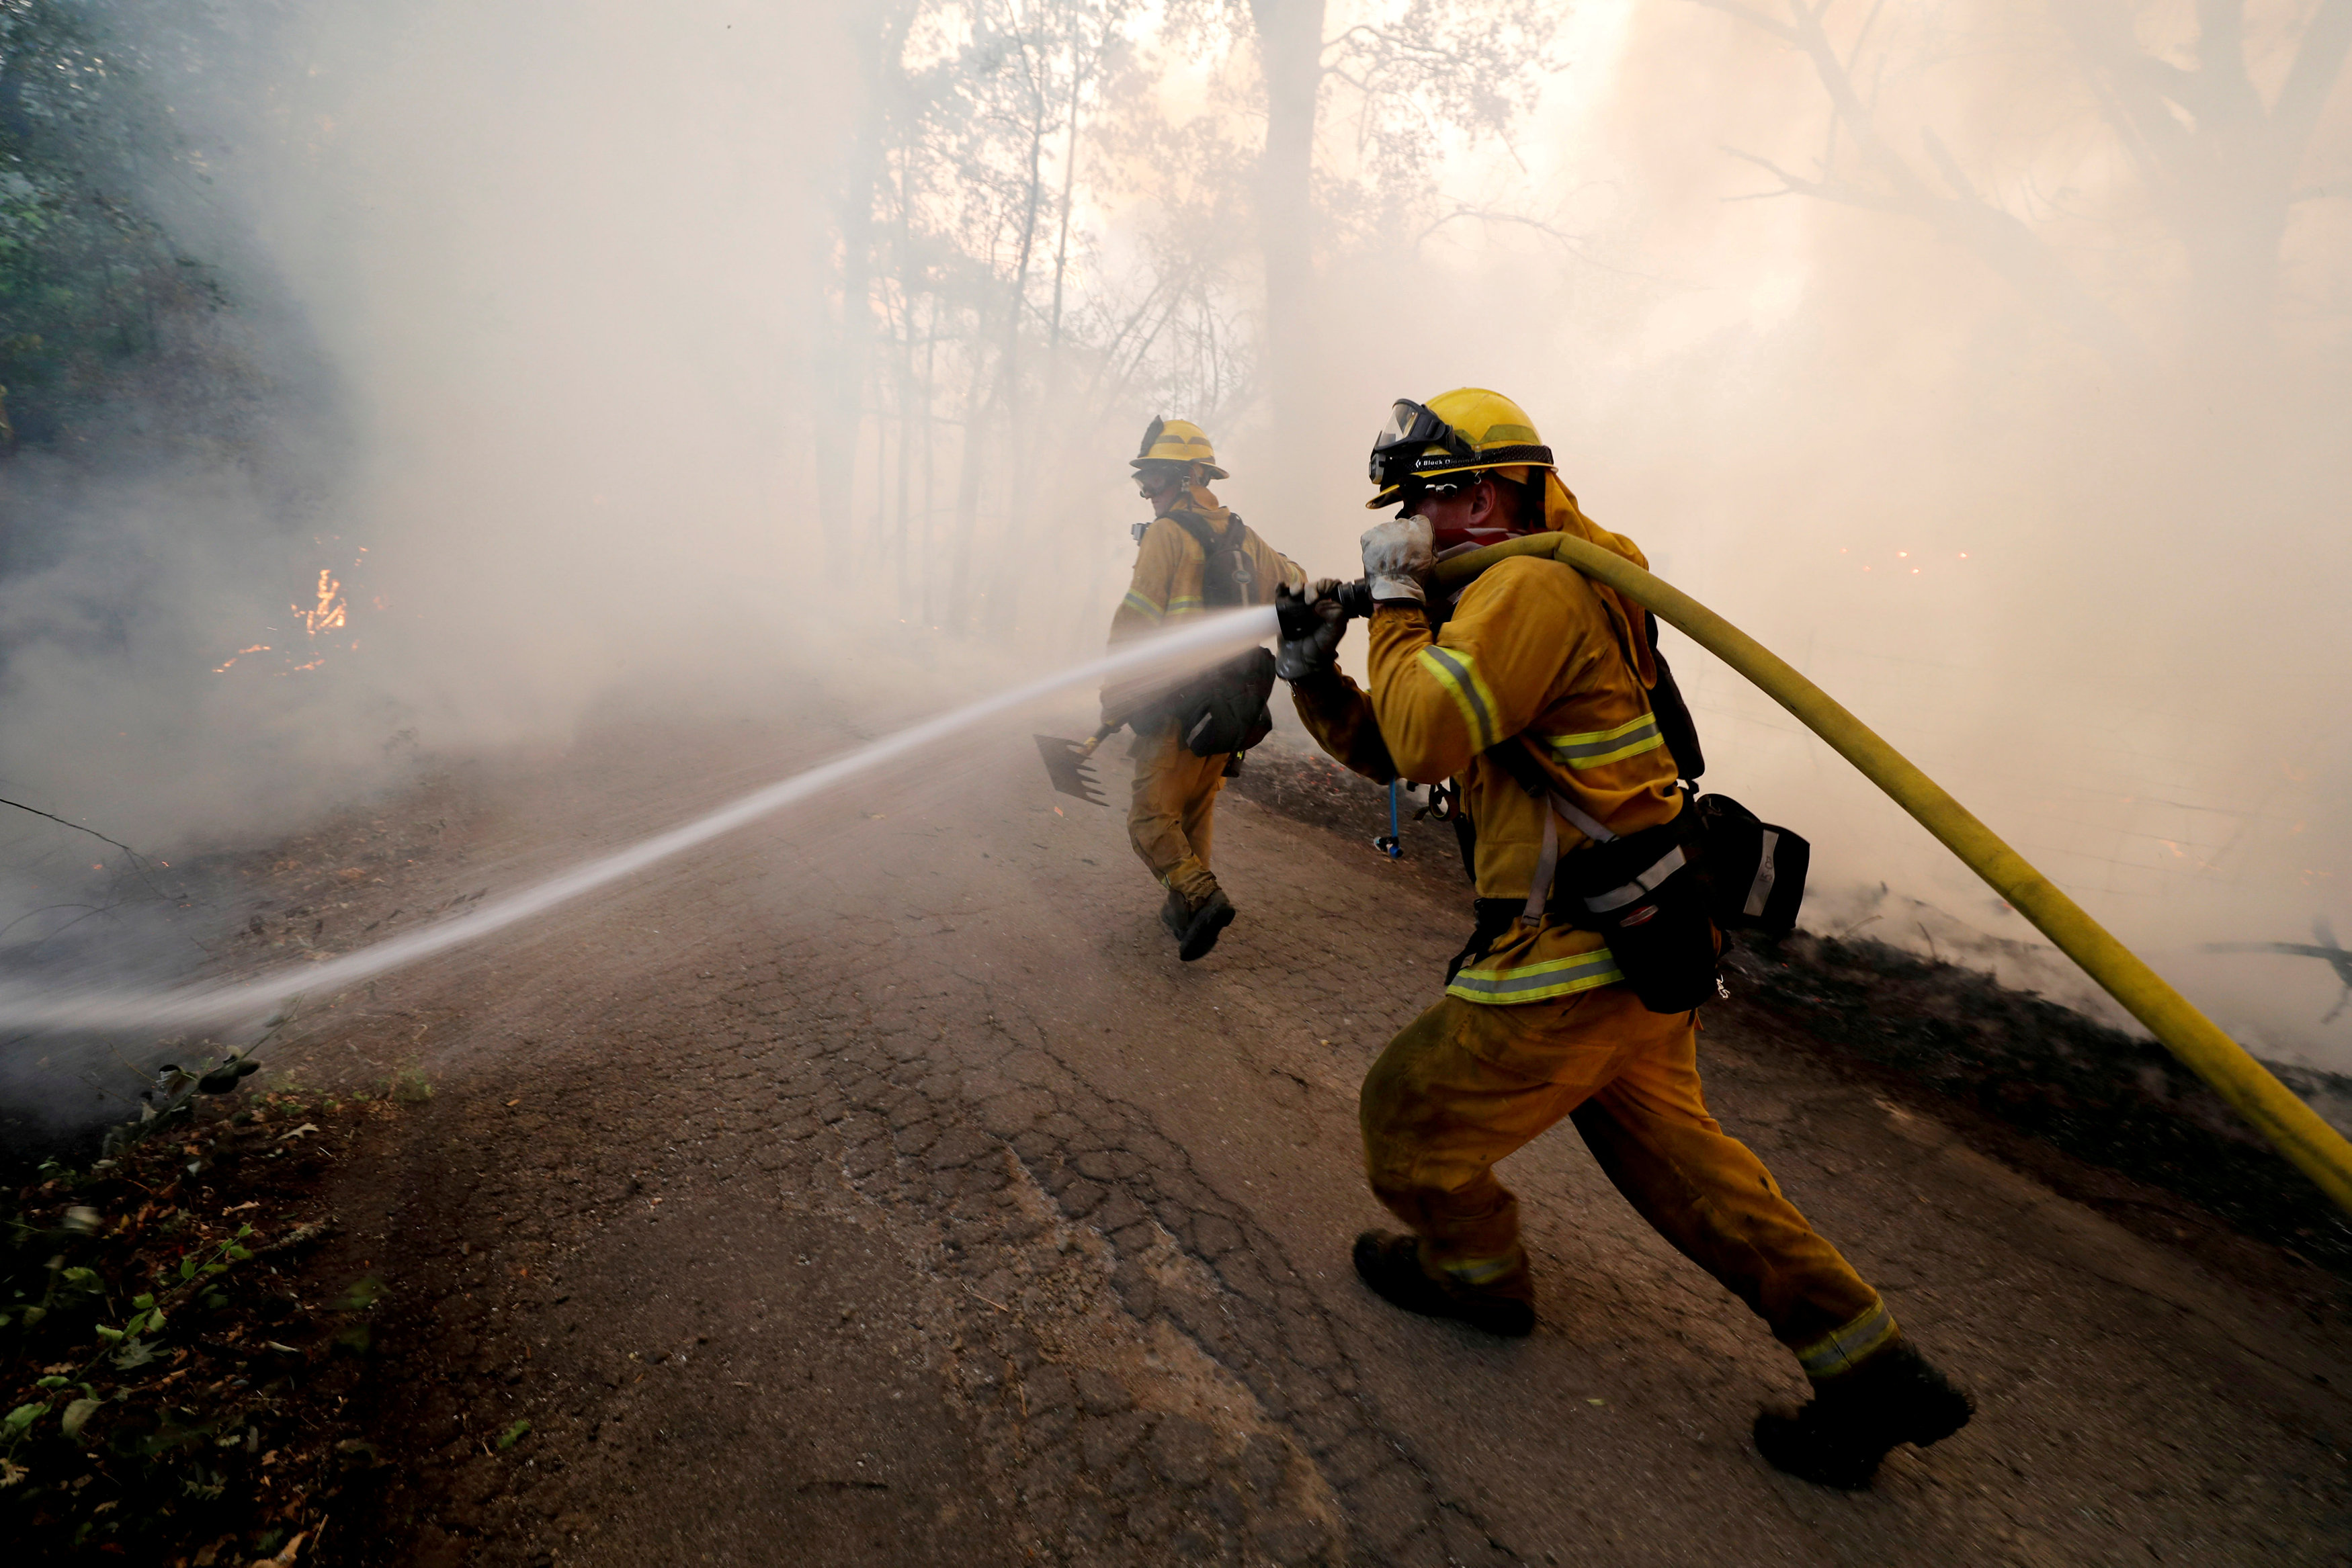 FILE PHOTO: A firefighter knocks down hotspots to slow the spread of the River Fire (Mendocino Complex) in Lakeport, California, U.S. July 31, 2018. REUTERS/Fred Greaves/File Photo